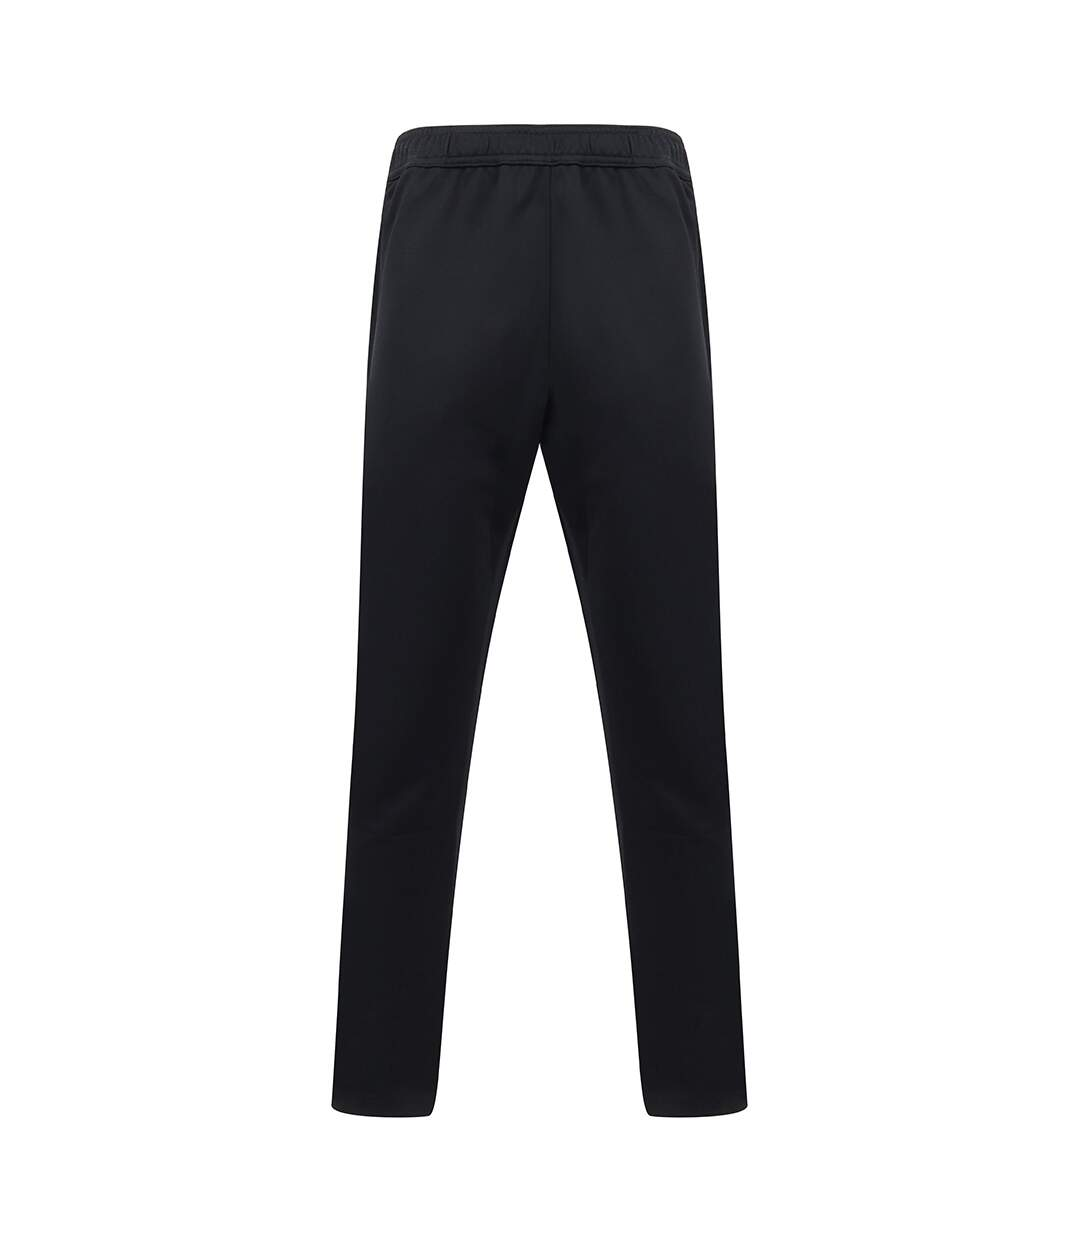 Finden & Hales Mens Knitted Tracksuit Pants (Navy/White) - UTPC3084